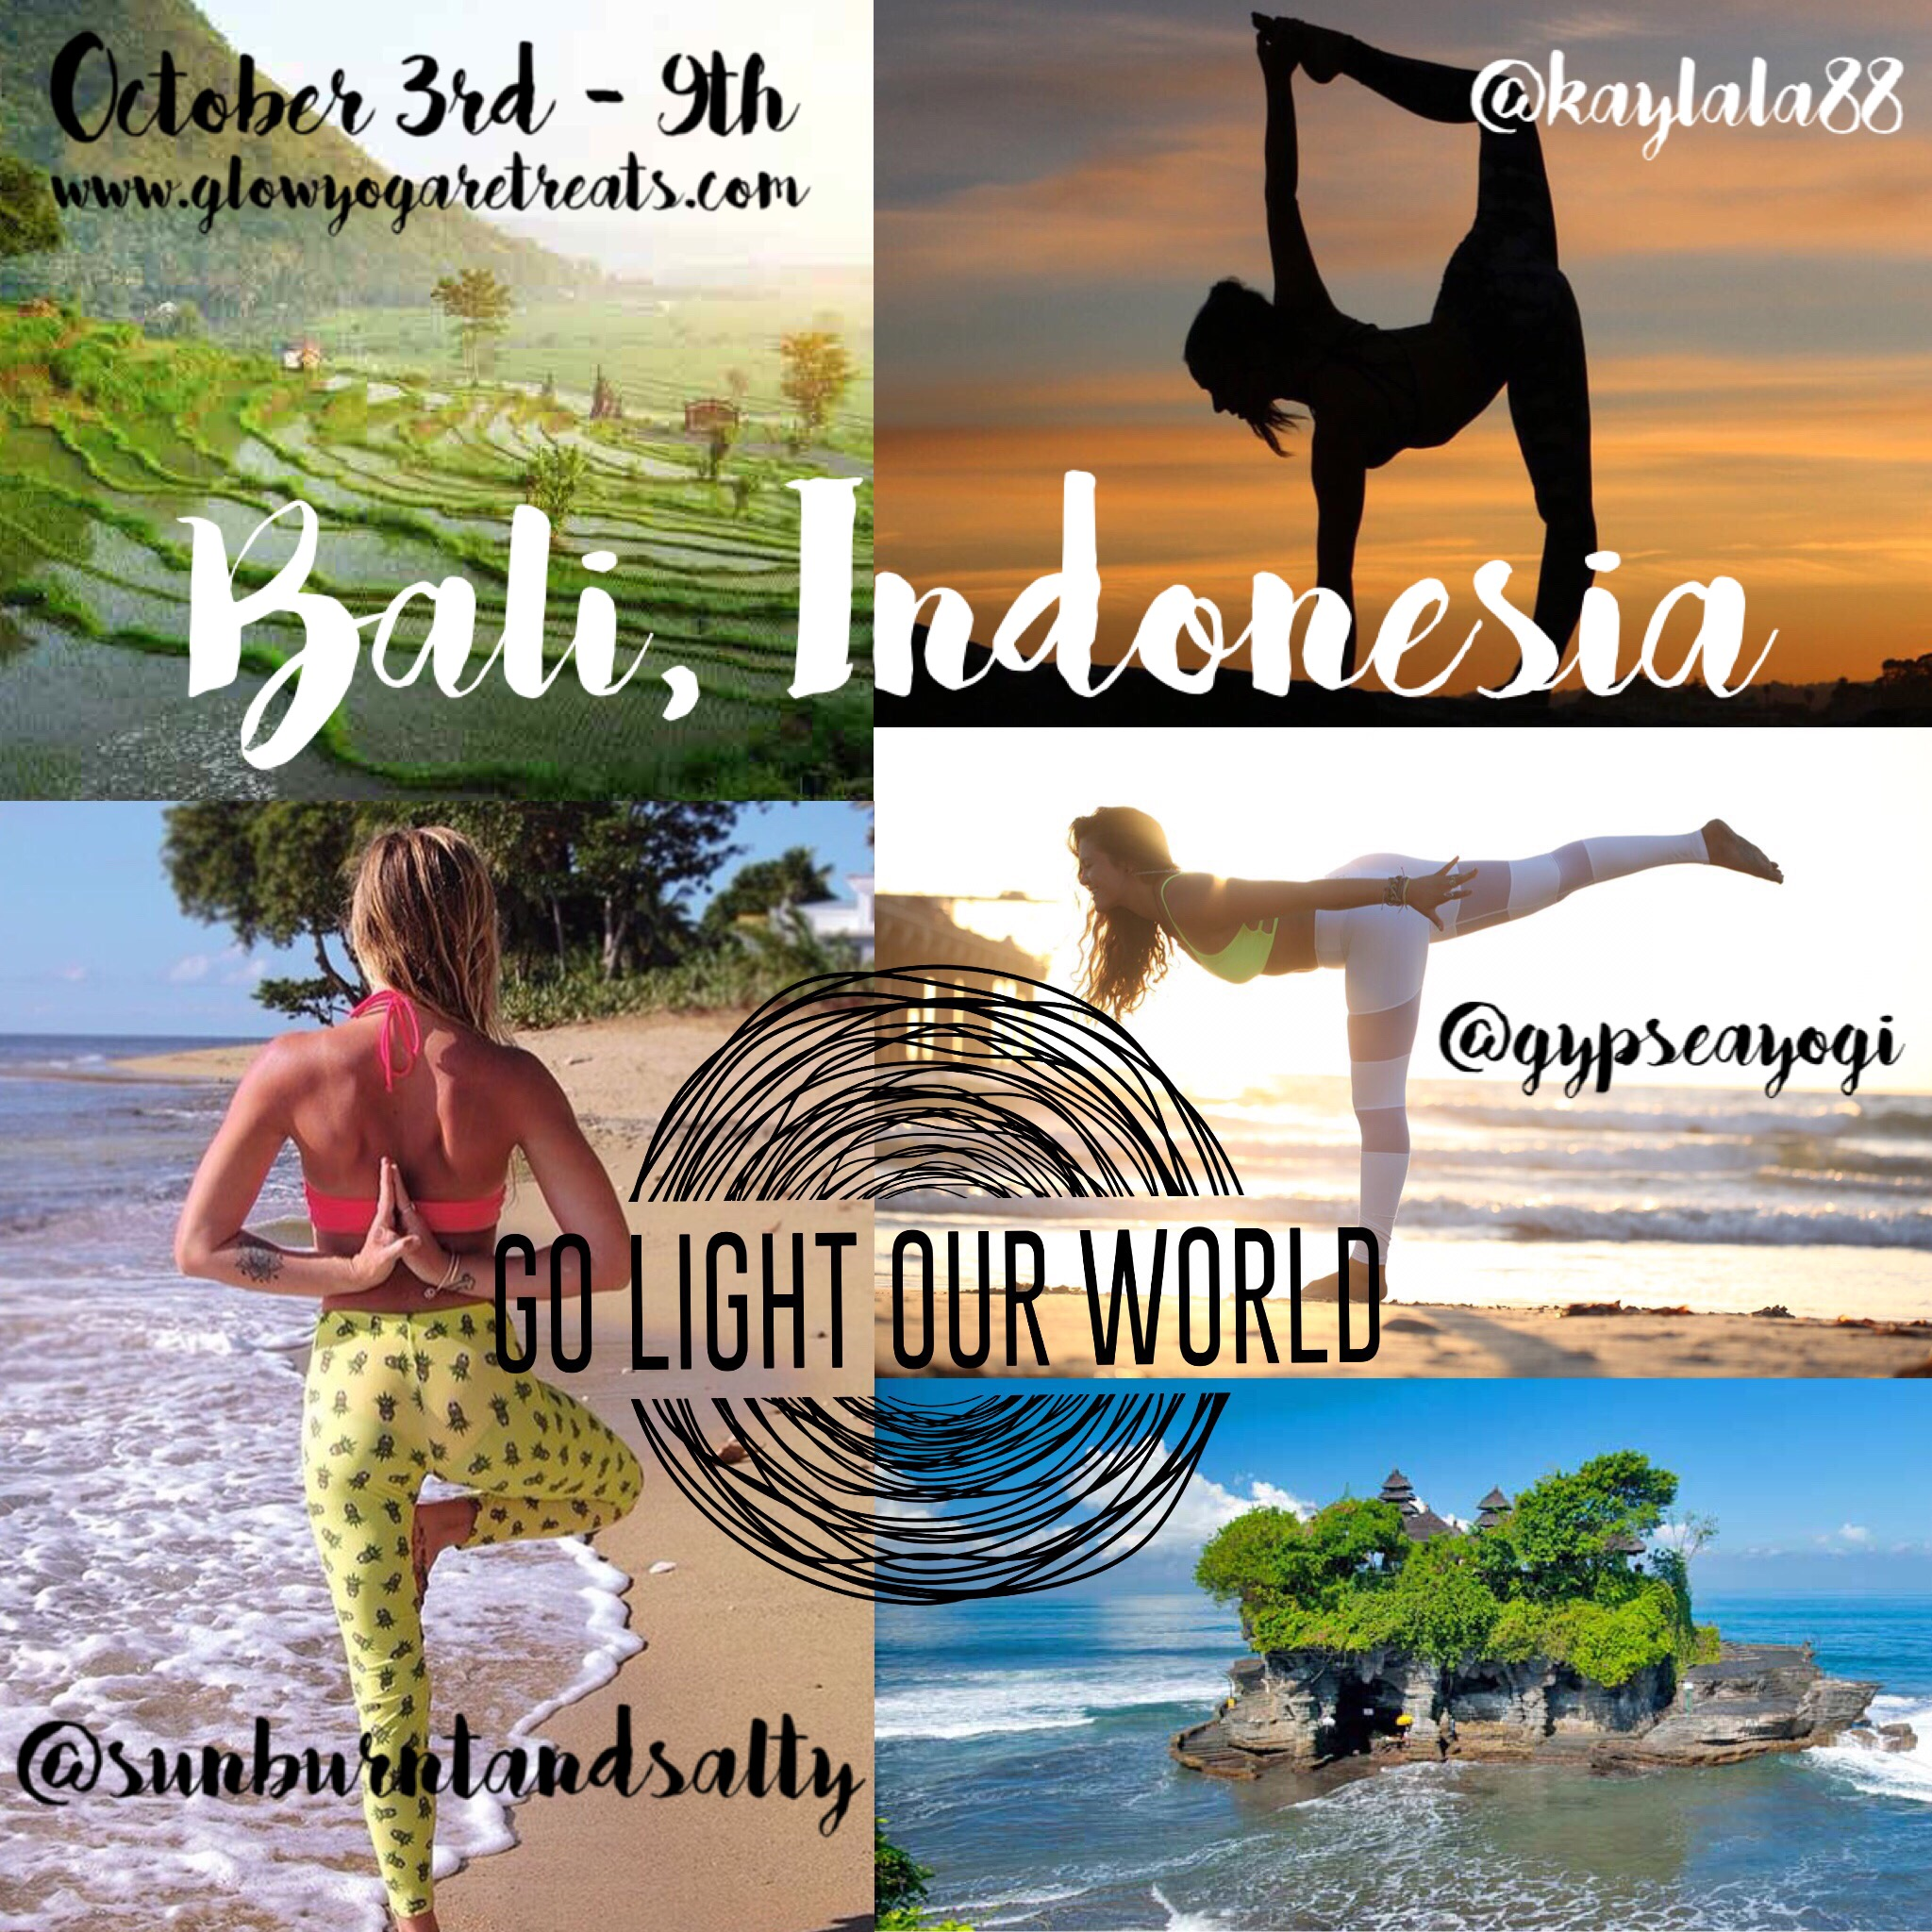 For more info and to sign up visit  GLOWyogaretreats.com